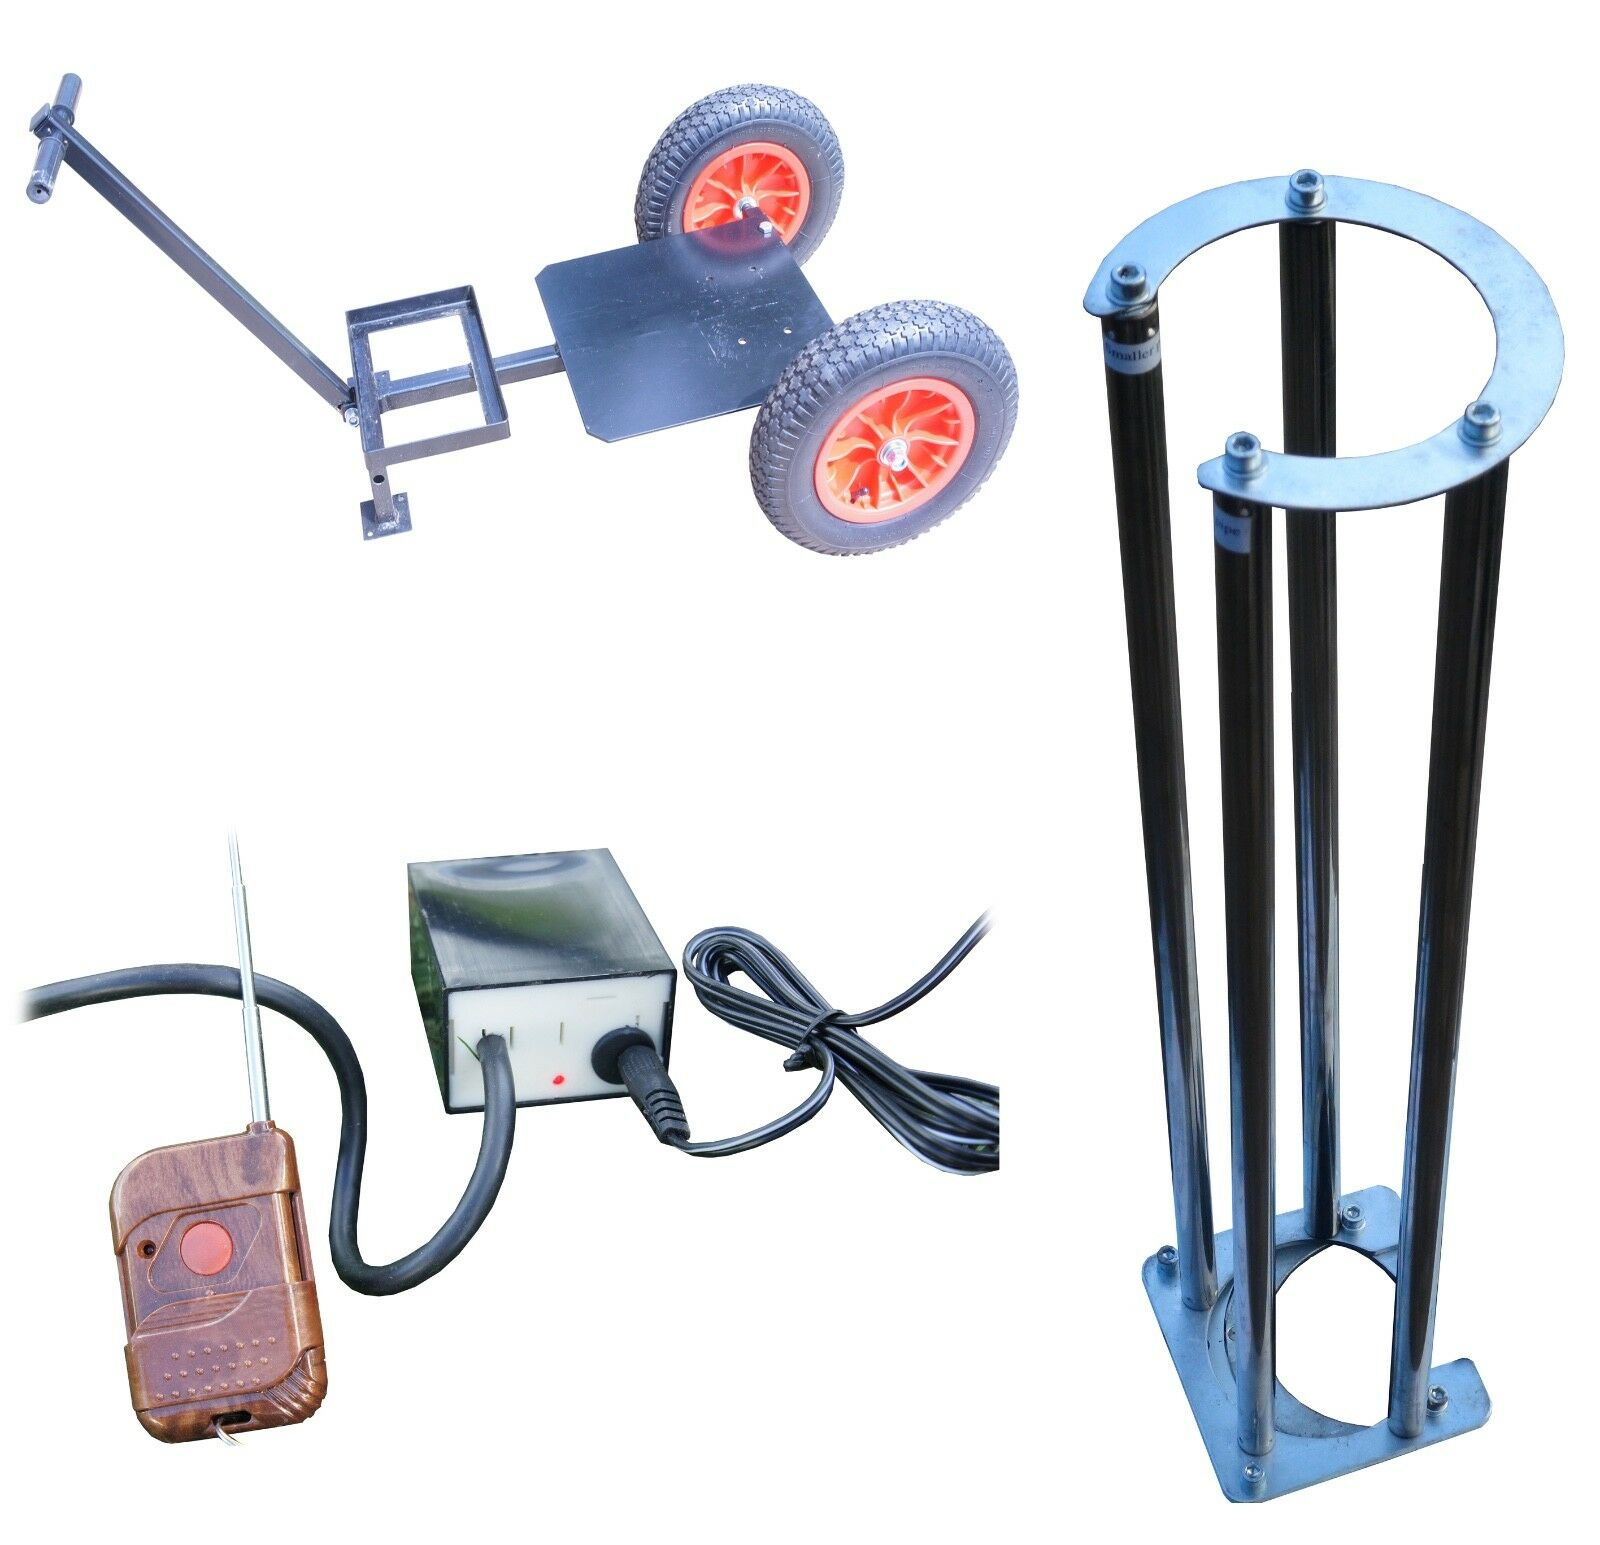 GDK CLAY PIGEON OF, TRAP ACCESSORIES, CHOICE OF, PIGEON WOBBLER KIT, TROLLEY, CLAY TARGETS 1a27de